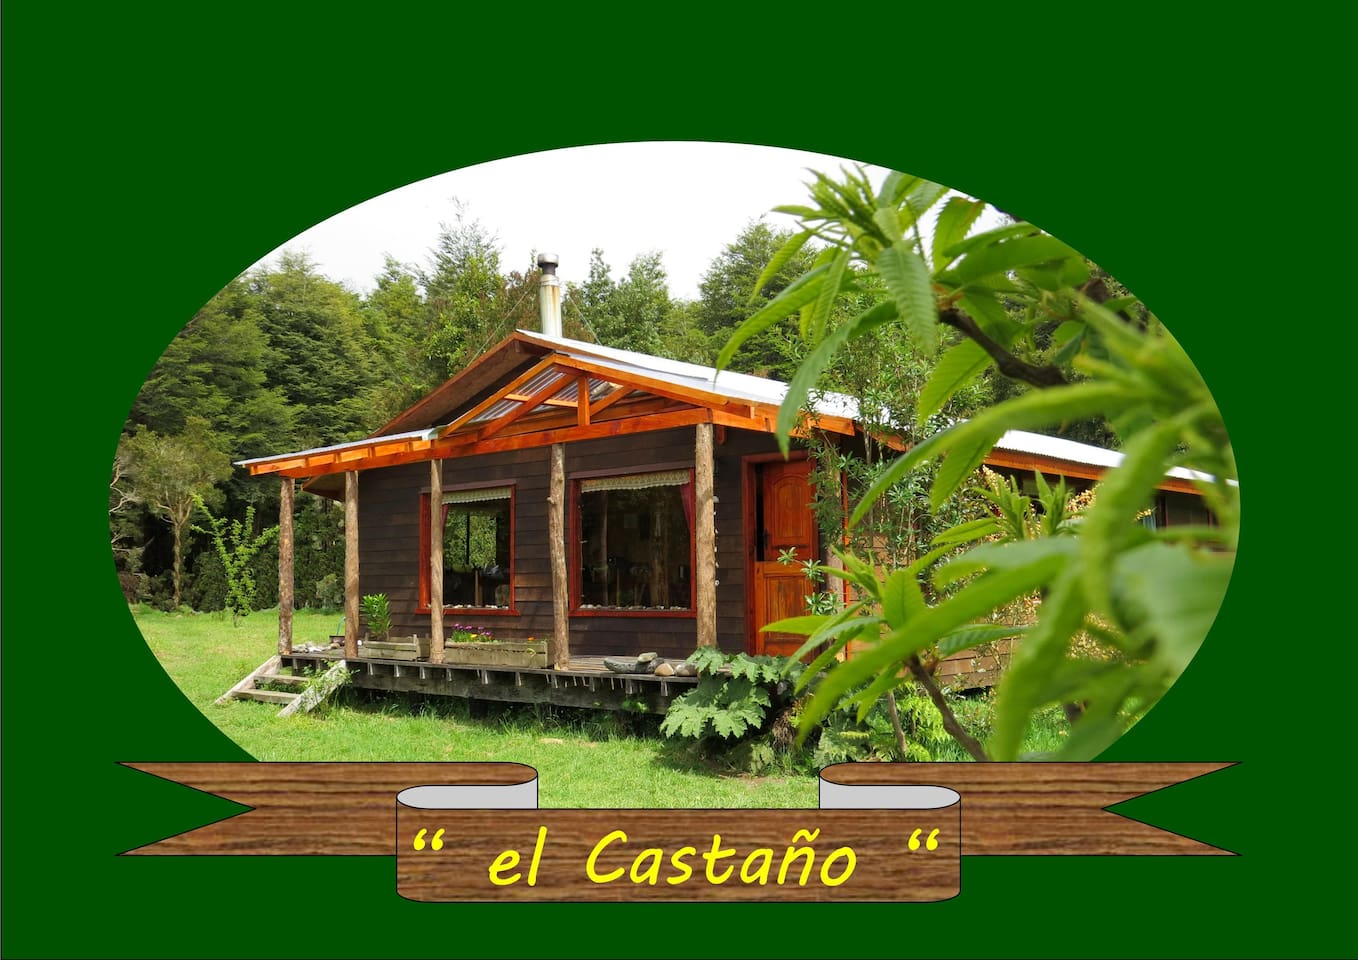 El Castaño ( the Chestnut tree)